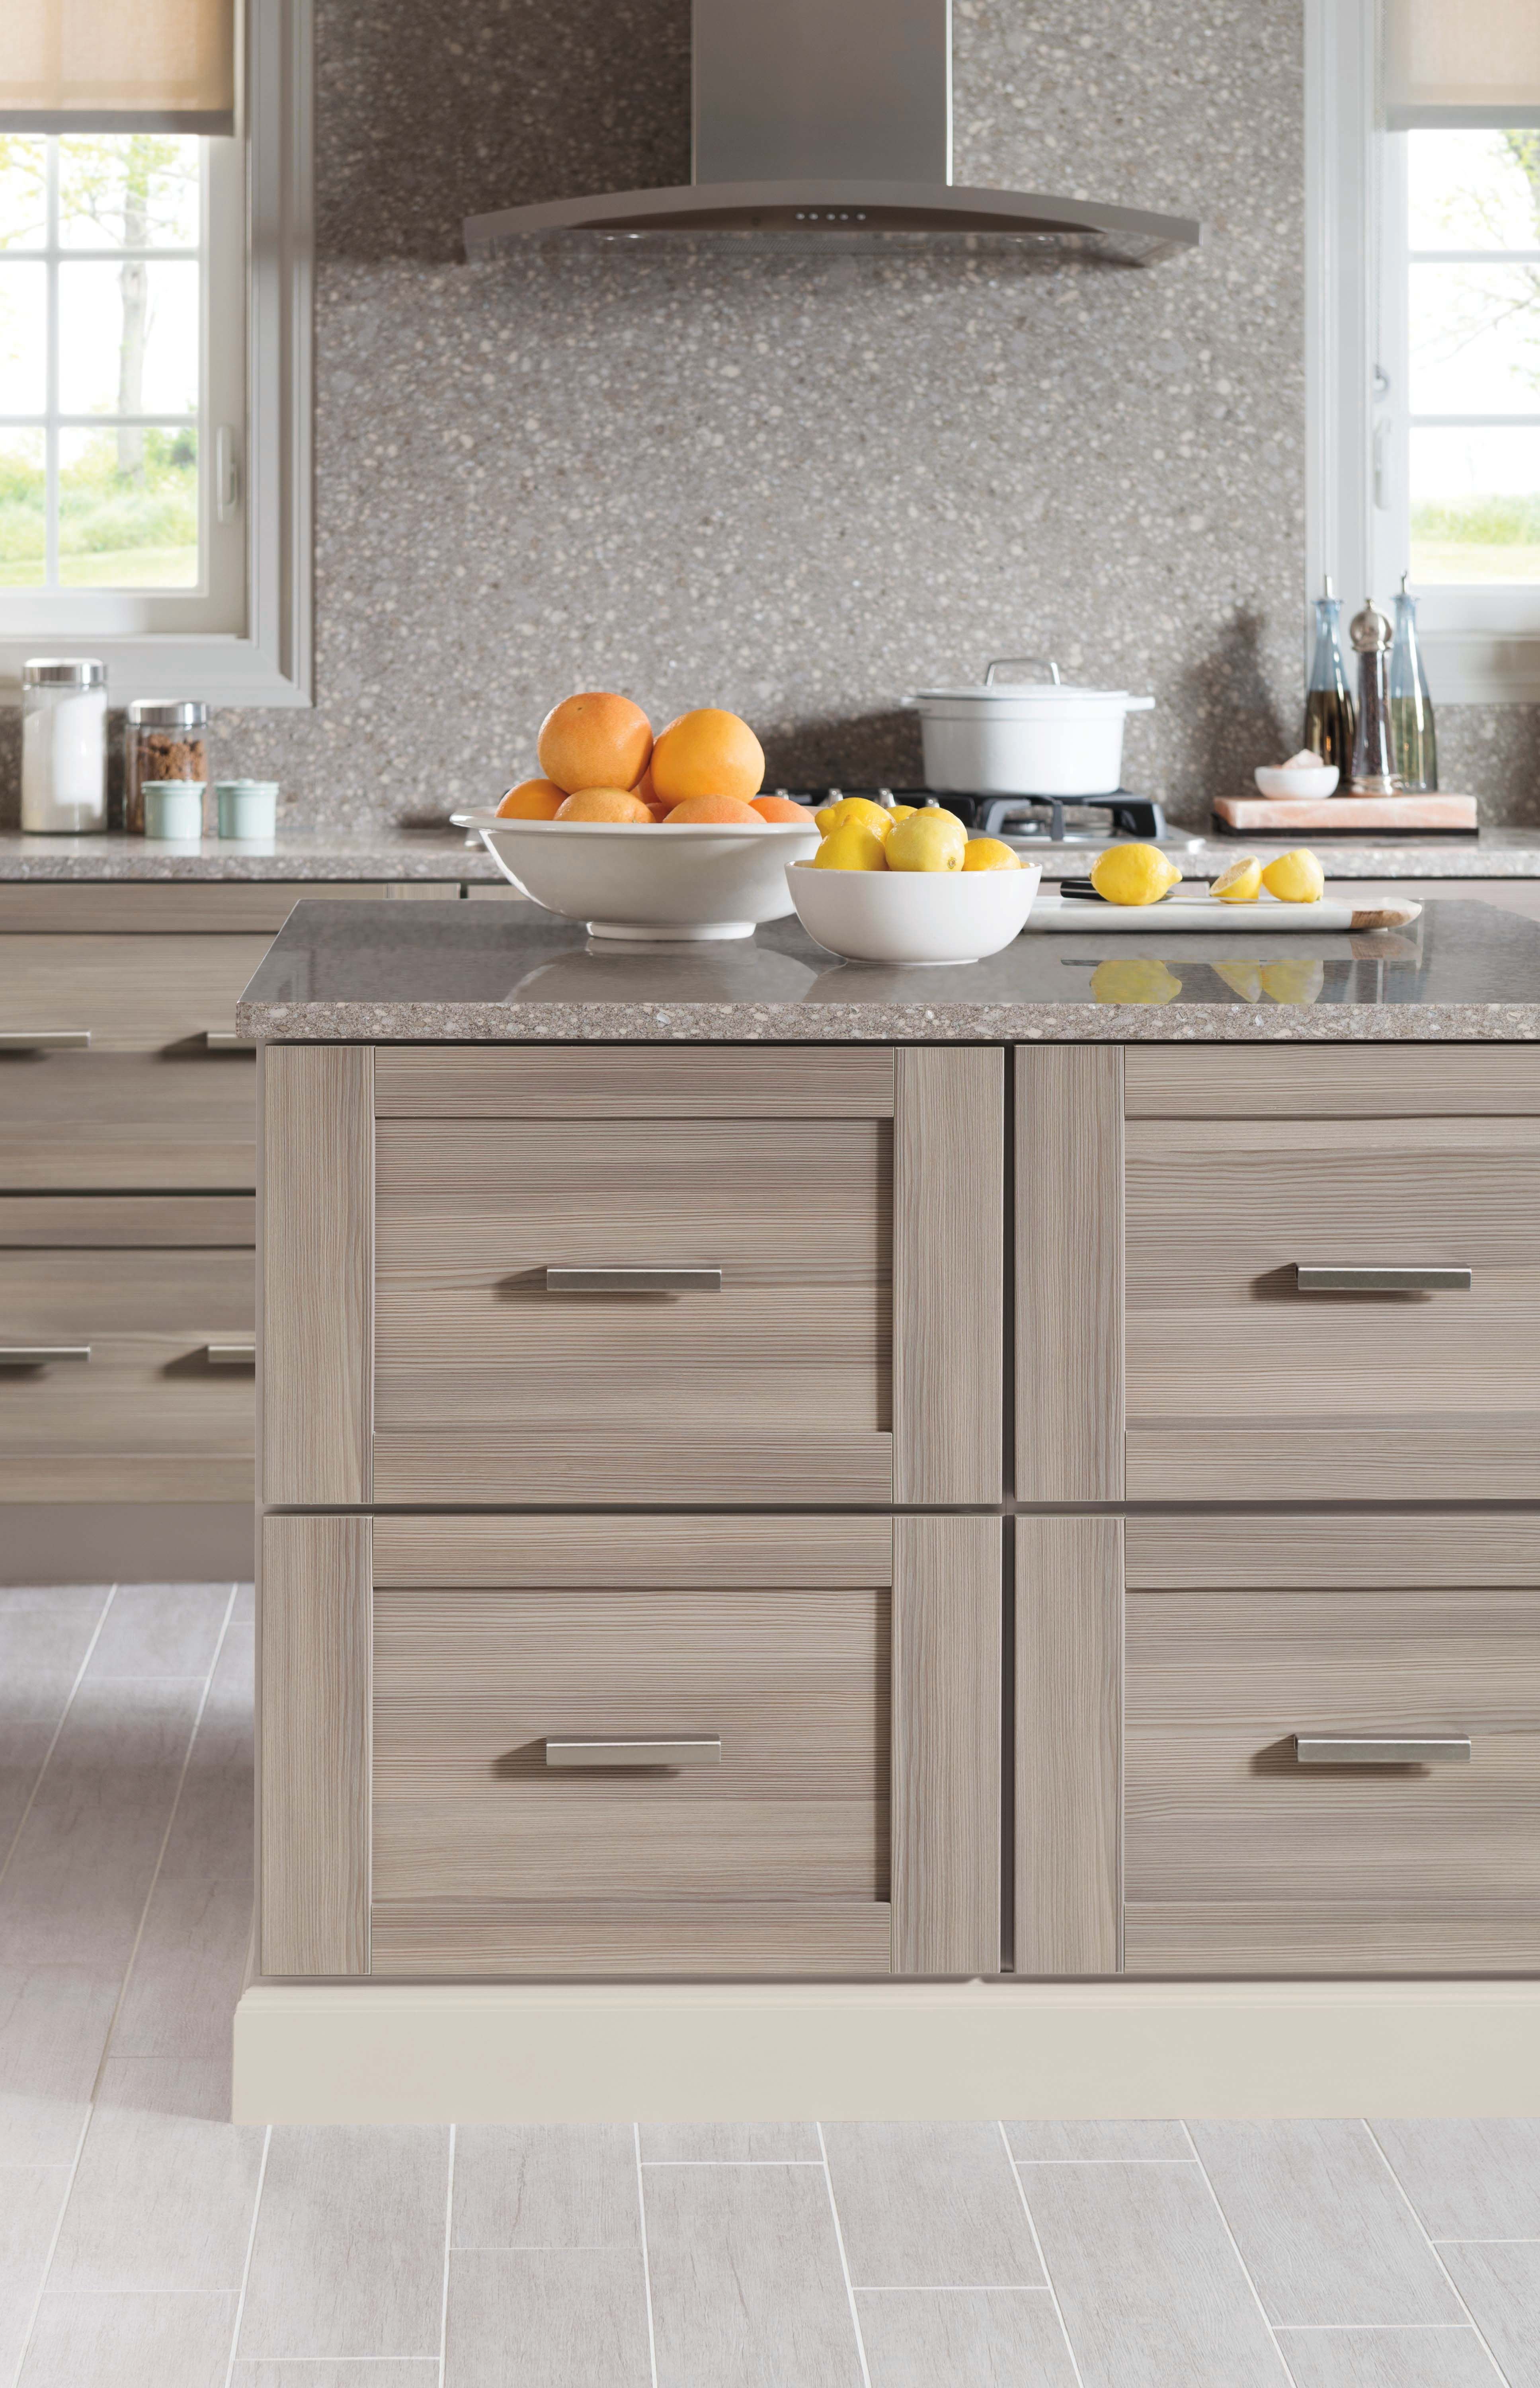 Family-friendly Kitchen Design Tip Select cabinetry that looks and feels like real wood but is durable and easy to clean. Martha Stewart Living Kitchens ... & Family-friendly Kitchen Design Tip: Select cabinetry that looks and ...